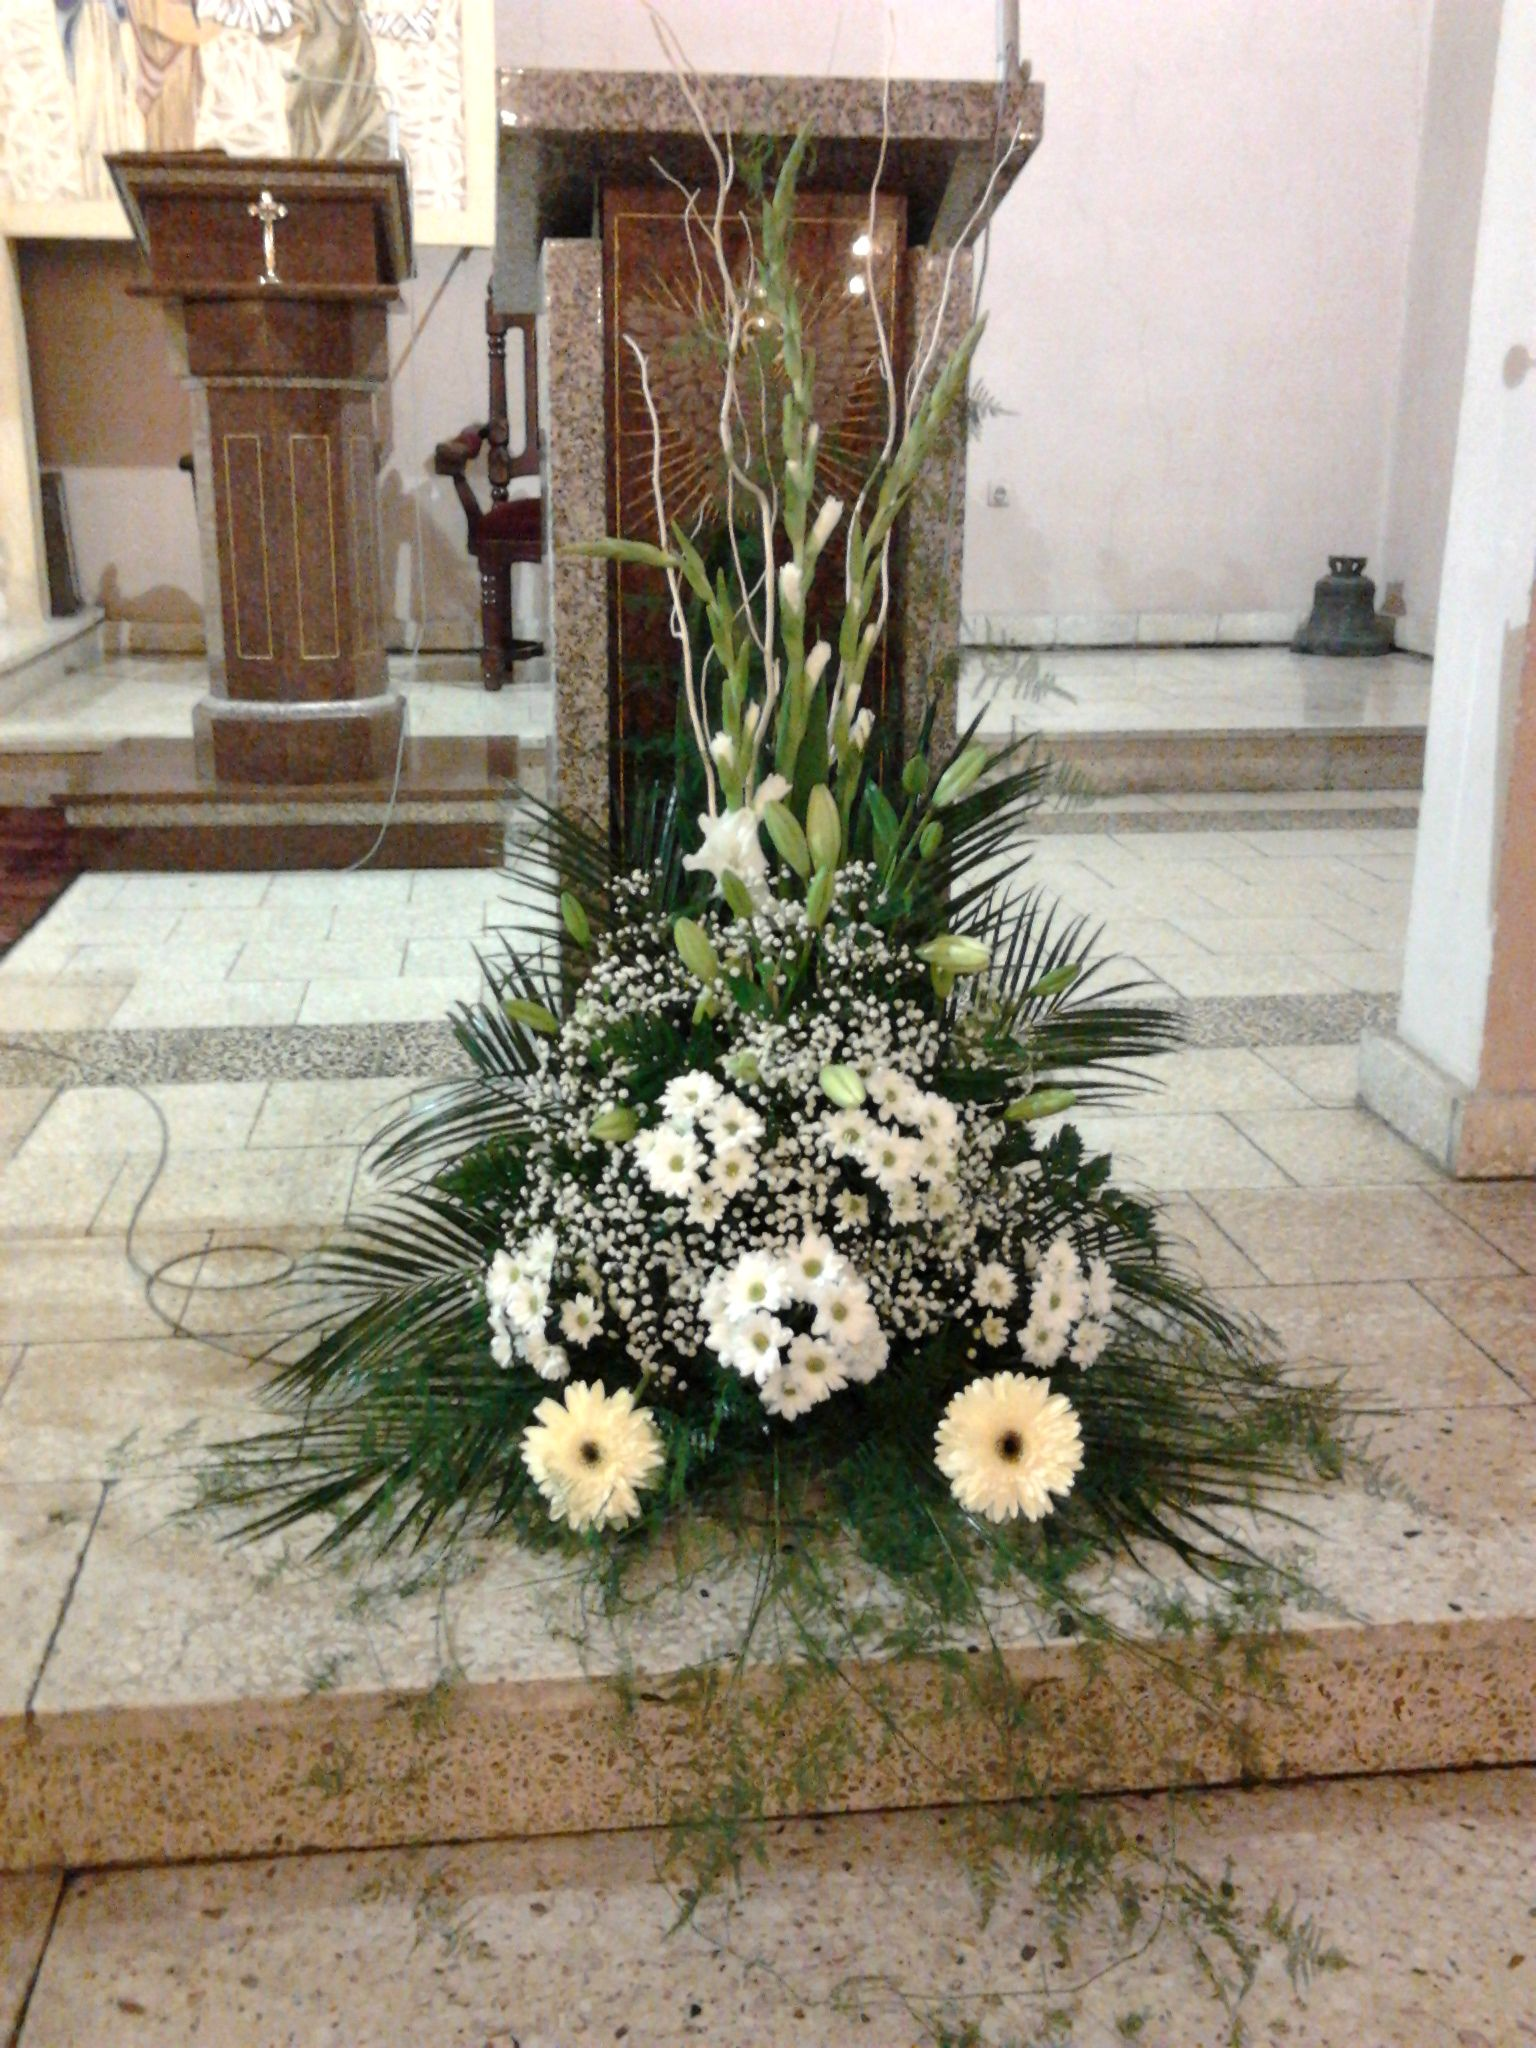 Pin by hets sumi on wedding spl pinterest churches church altar flowers wedding ceremony flowers church flowers church flower arrangements funeral flowers floral arrangements wedding ceremonies izmirmasajfo